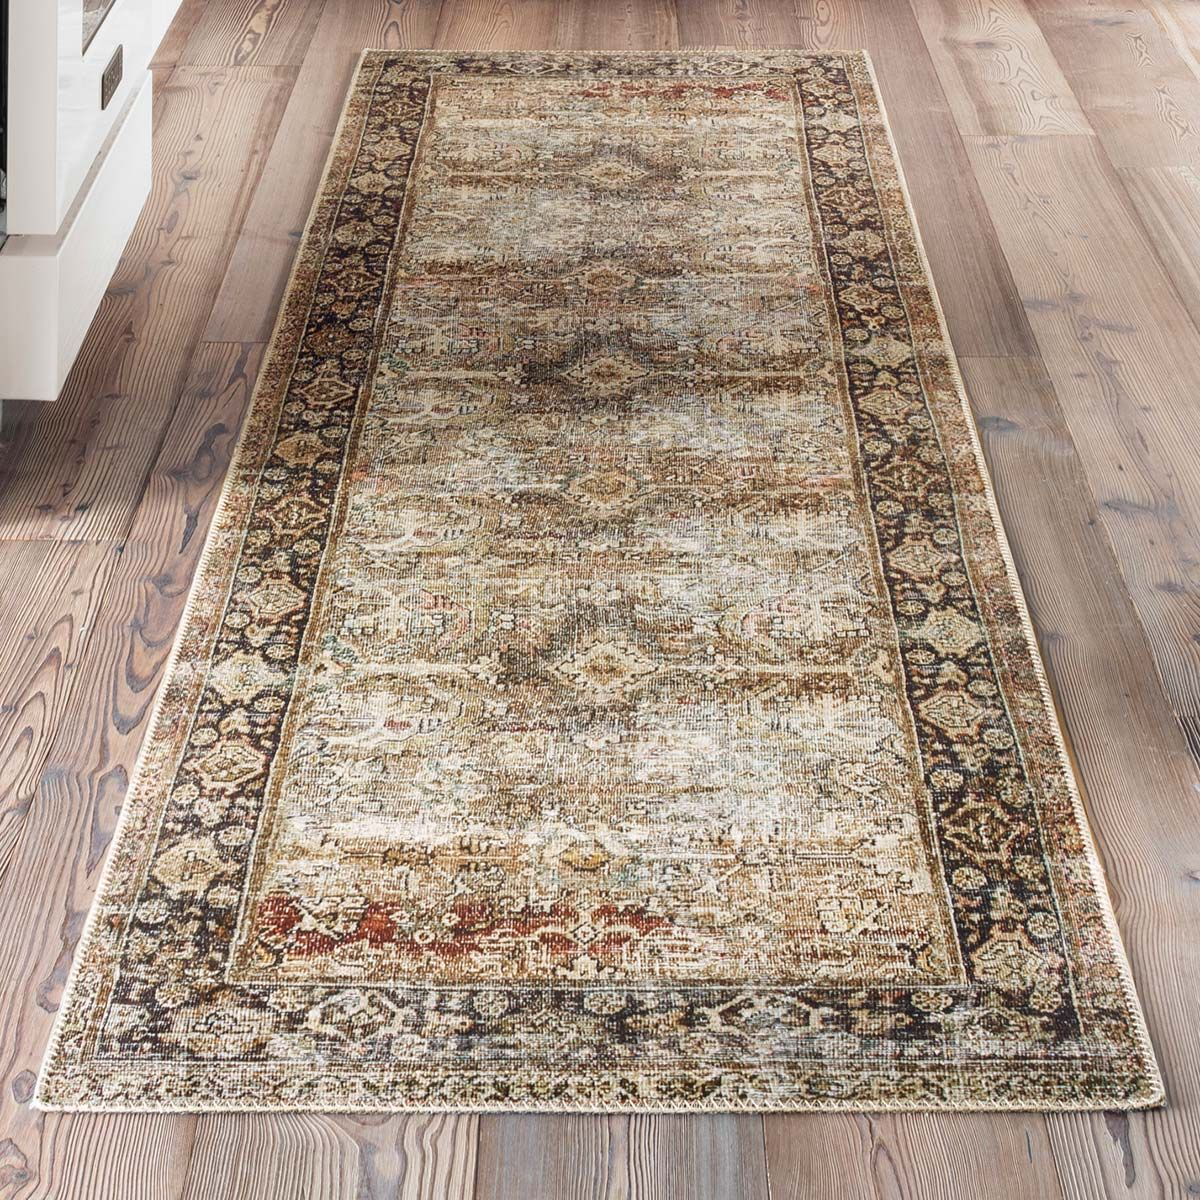 Genevieve Olive & Charcoal Rug - 3 x 8